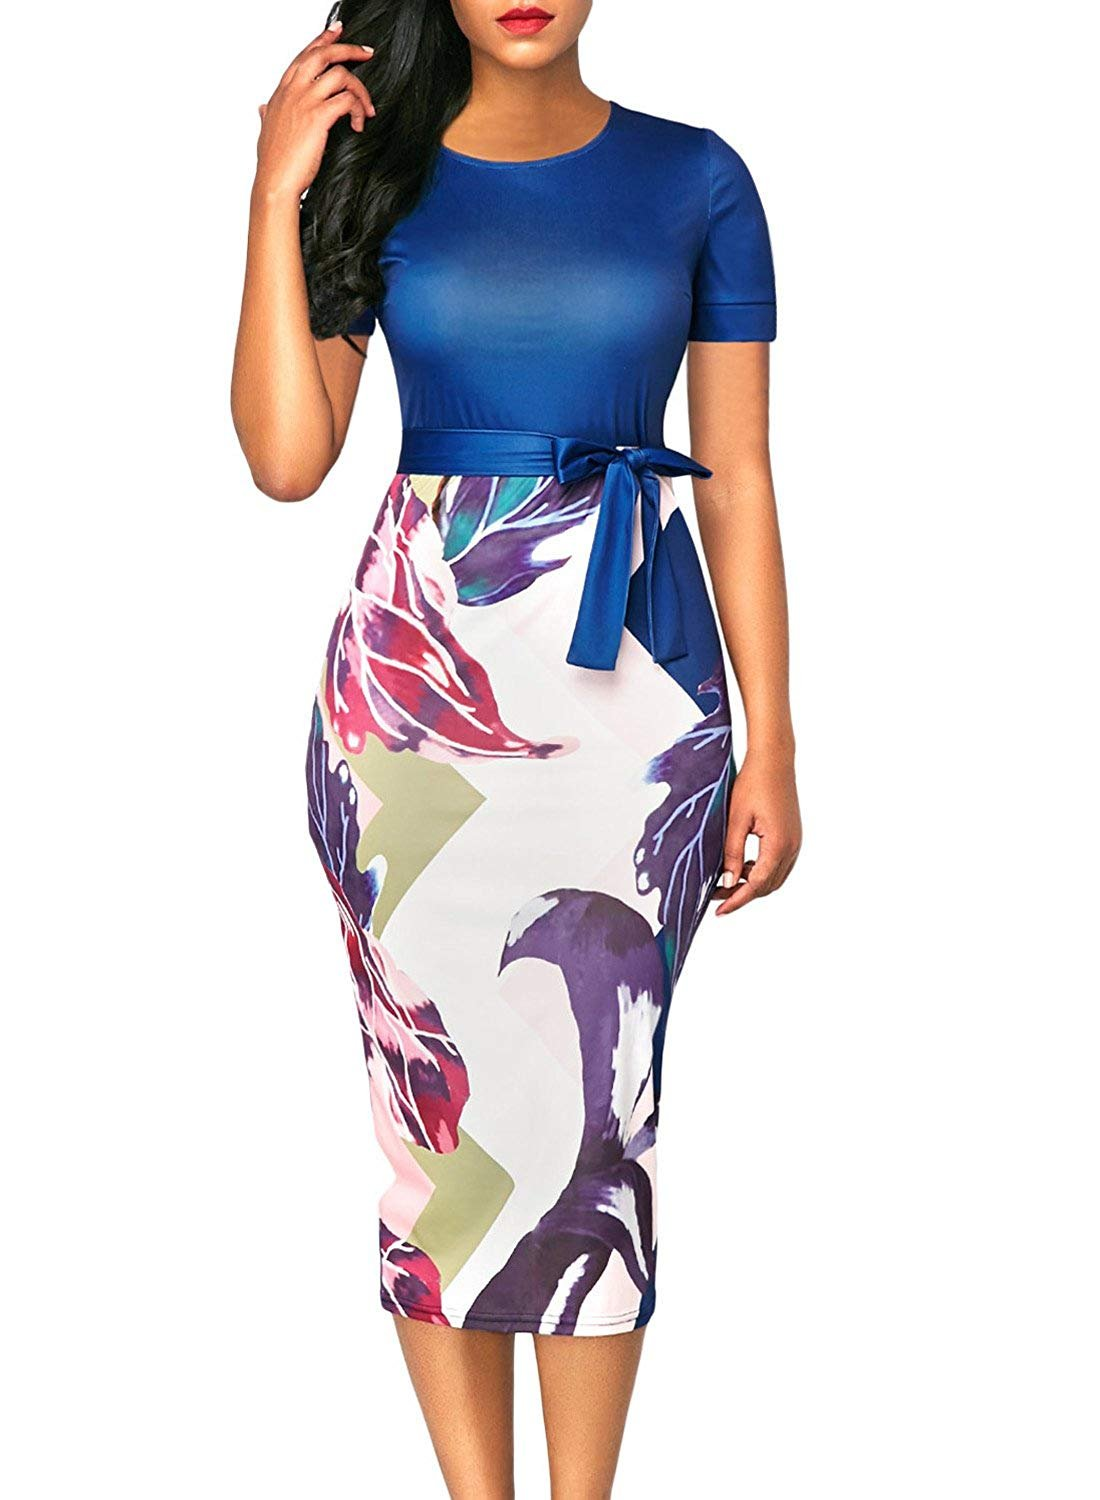 Available at Amazon: Locryz Women Business Wear to Work Short Sleeve Floral Print Bodyon Pencil Dress